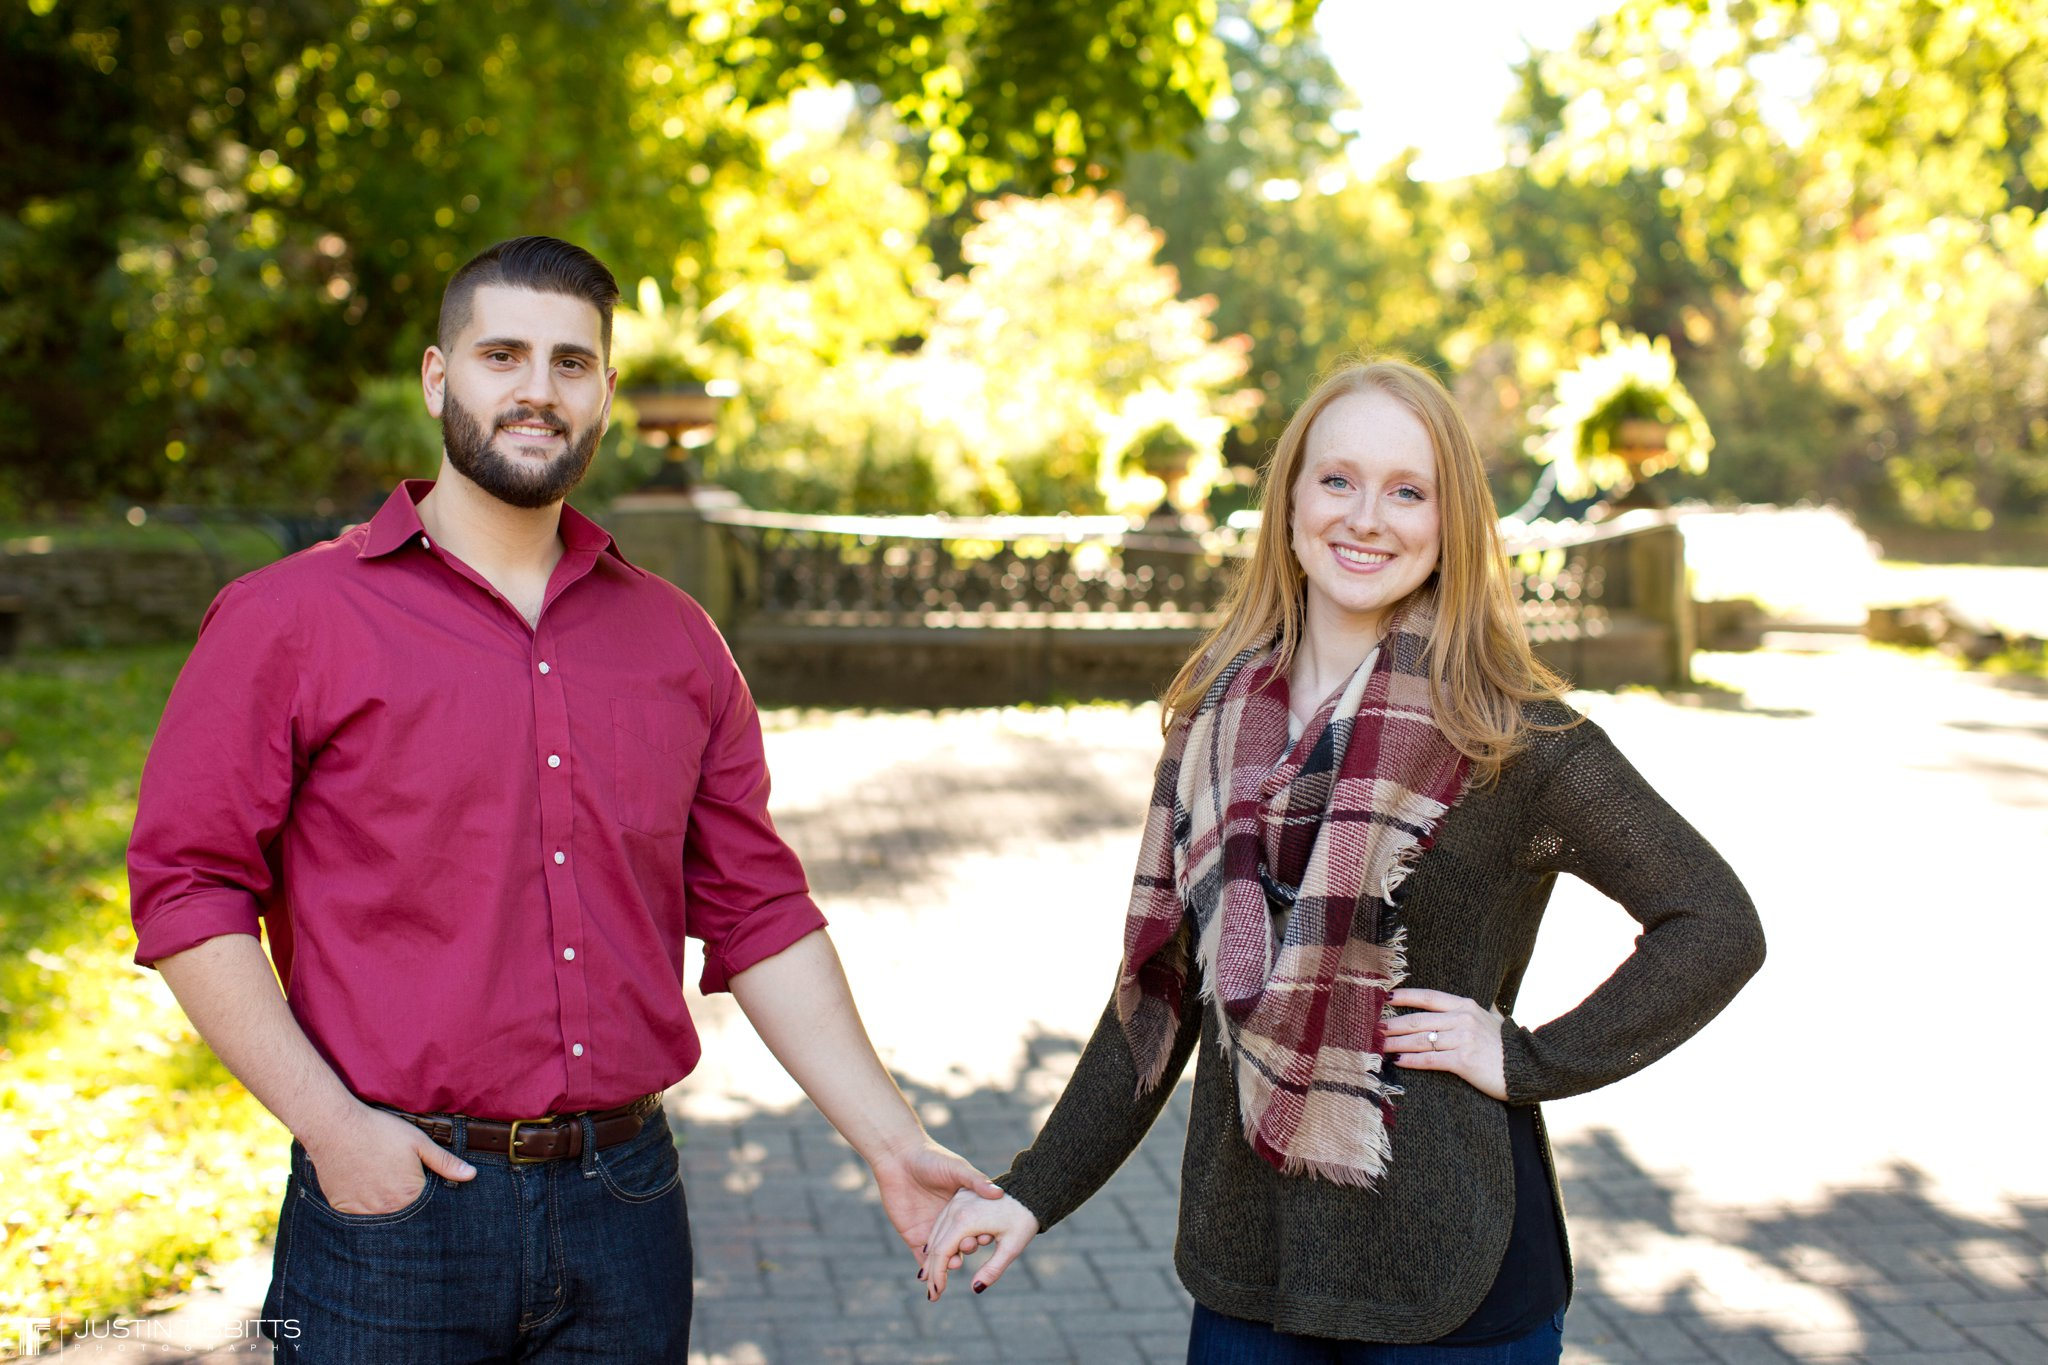 congress-park-saratoga-springs-engagement-photos-with-lauren-and-nick_0003